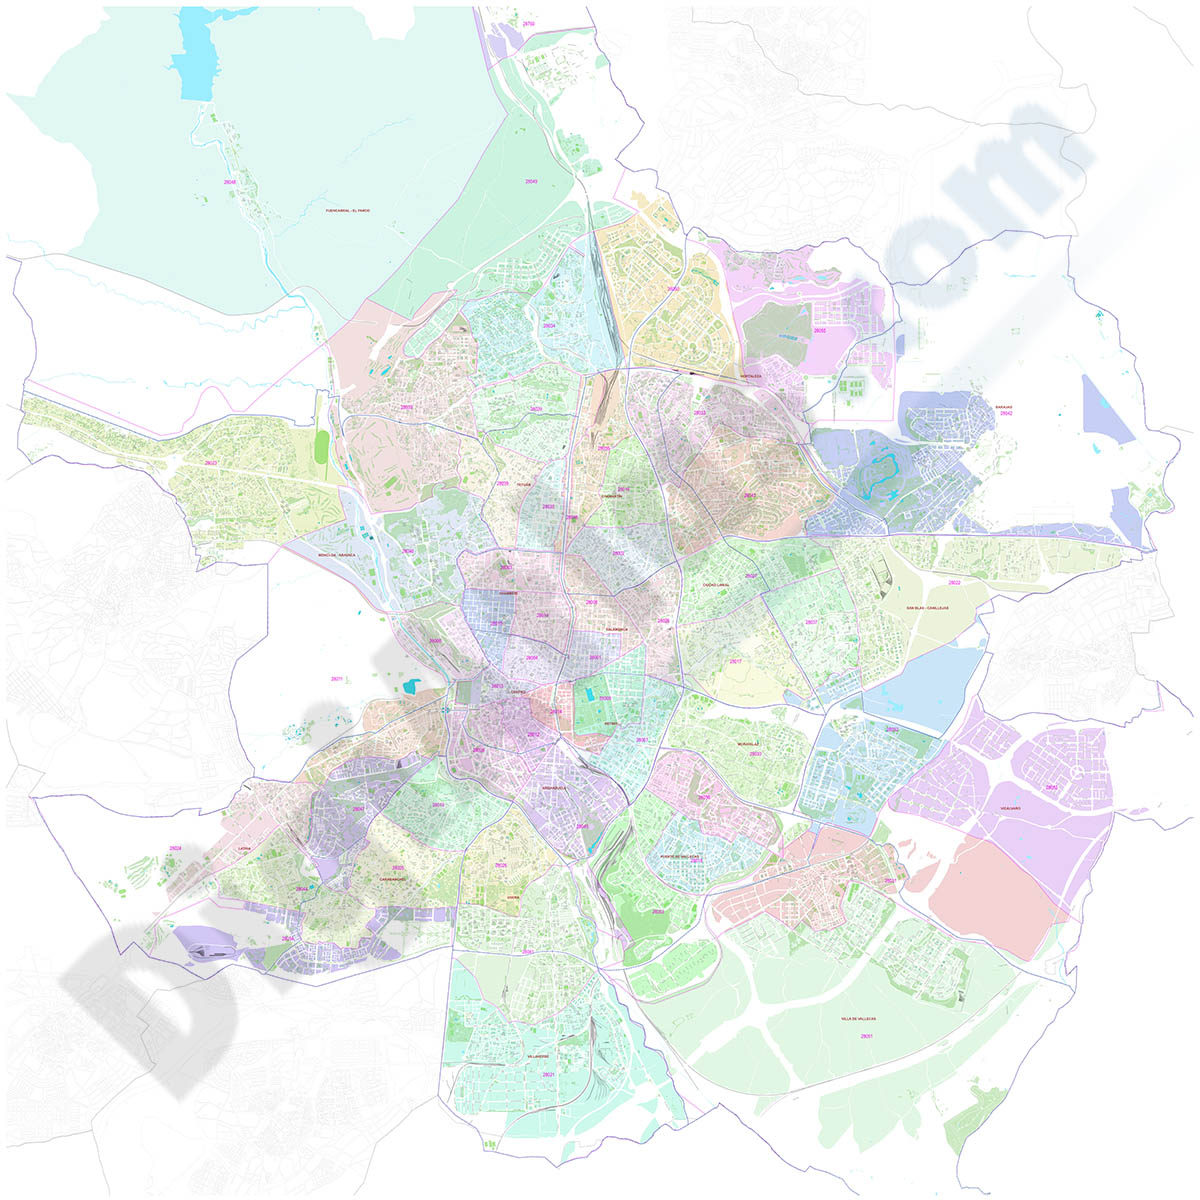 Madrid city map with postal code areas